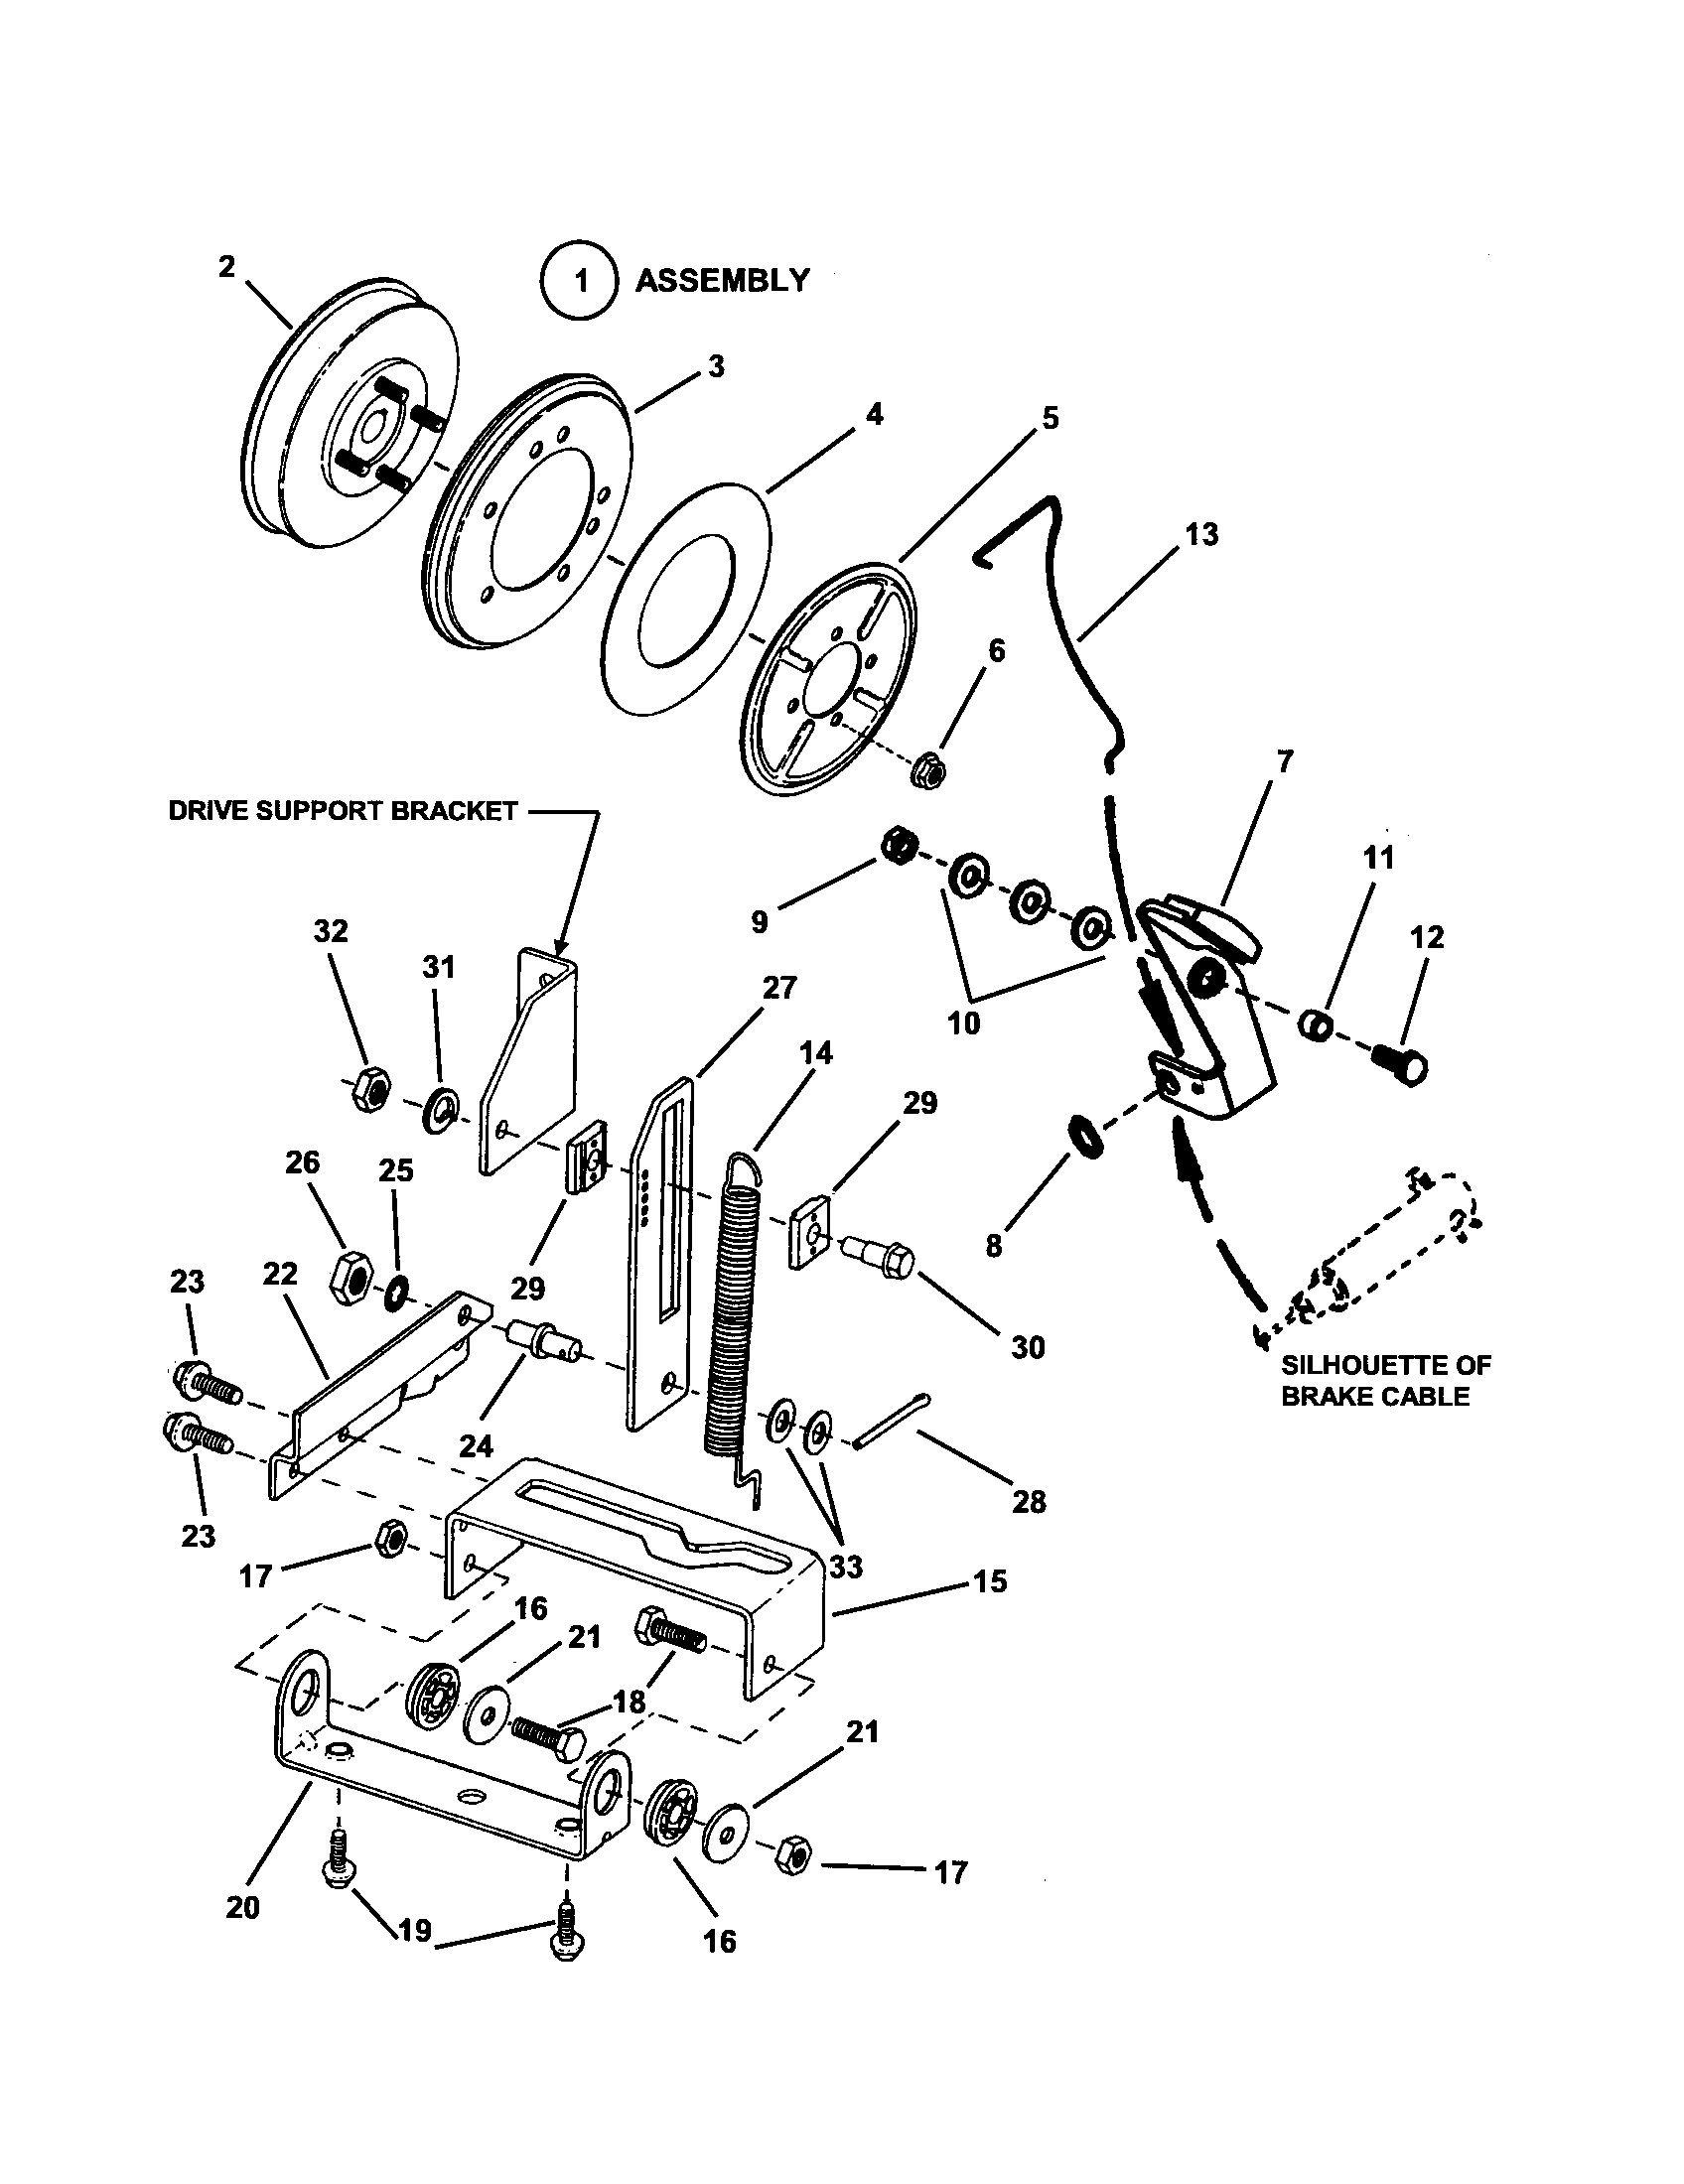 hight resolution of deck diagram and parts list for snapper ridingmowertractorparts wiring diagram today